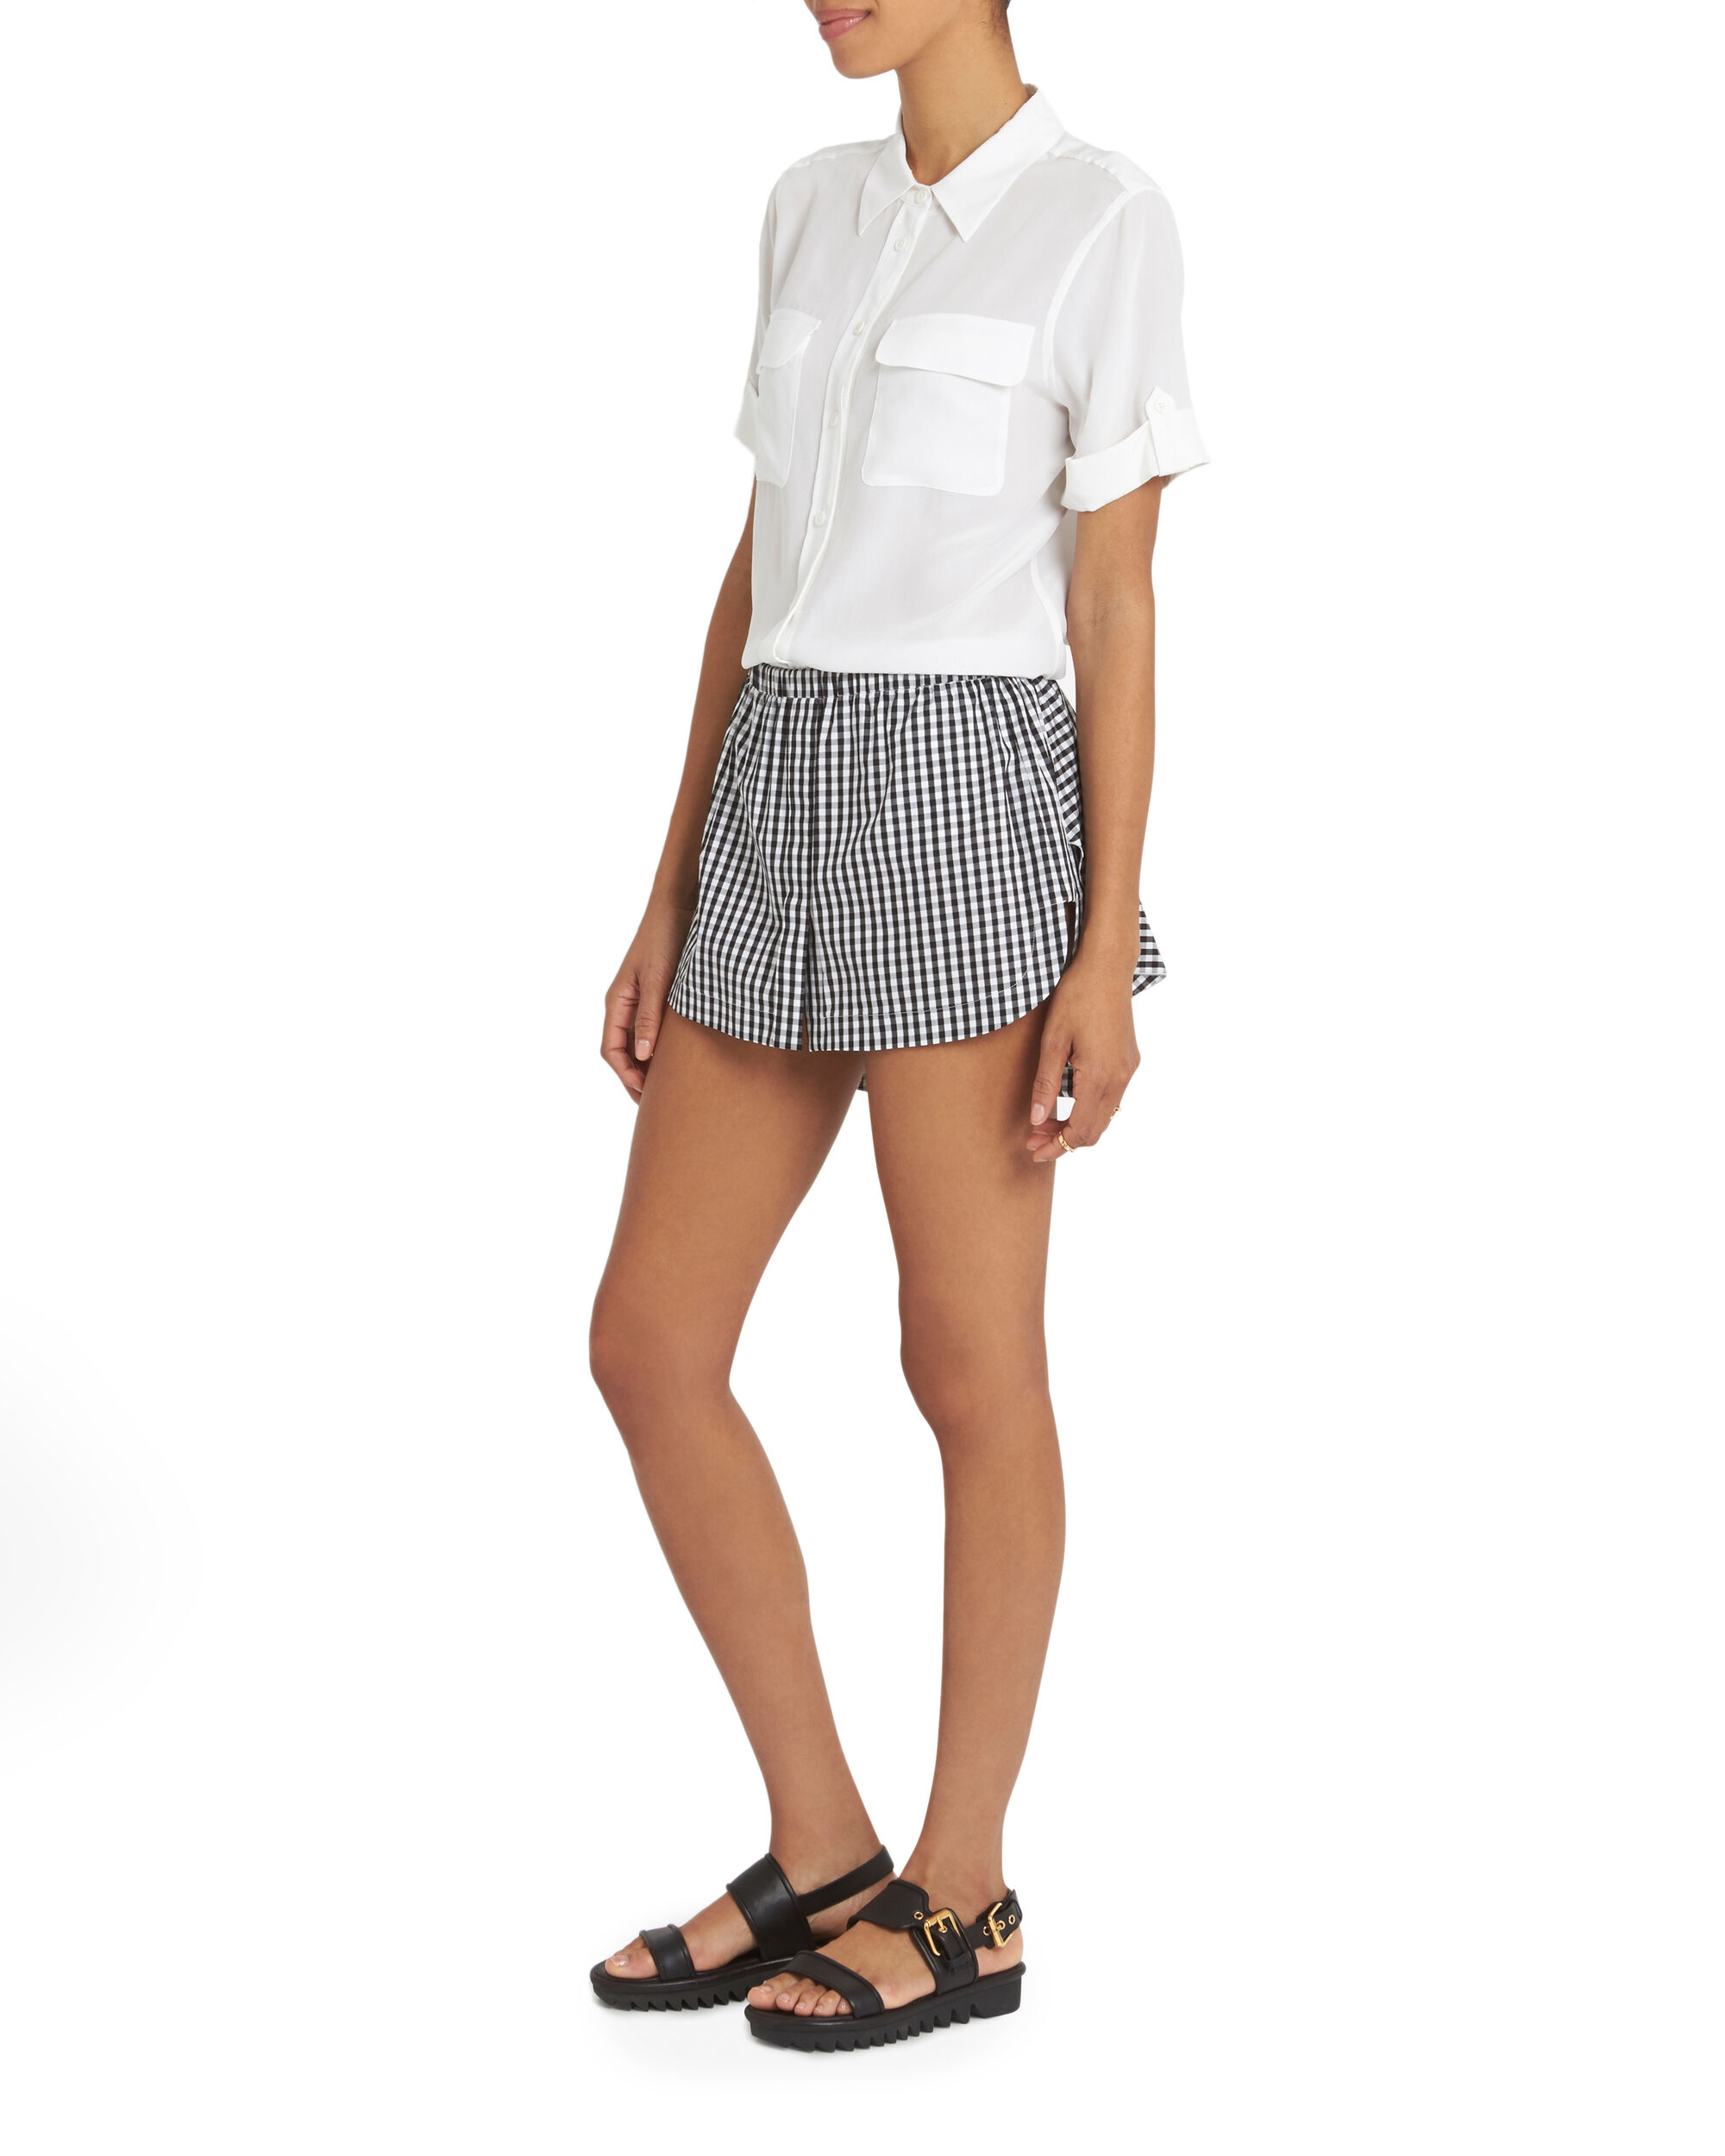 Slim Signature White Double Flap Pocket Short Sleeve Blouse, WHITE, hi-res